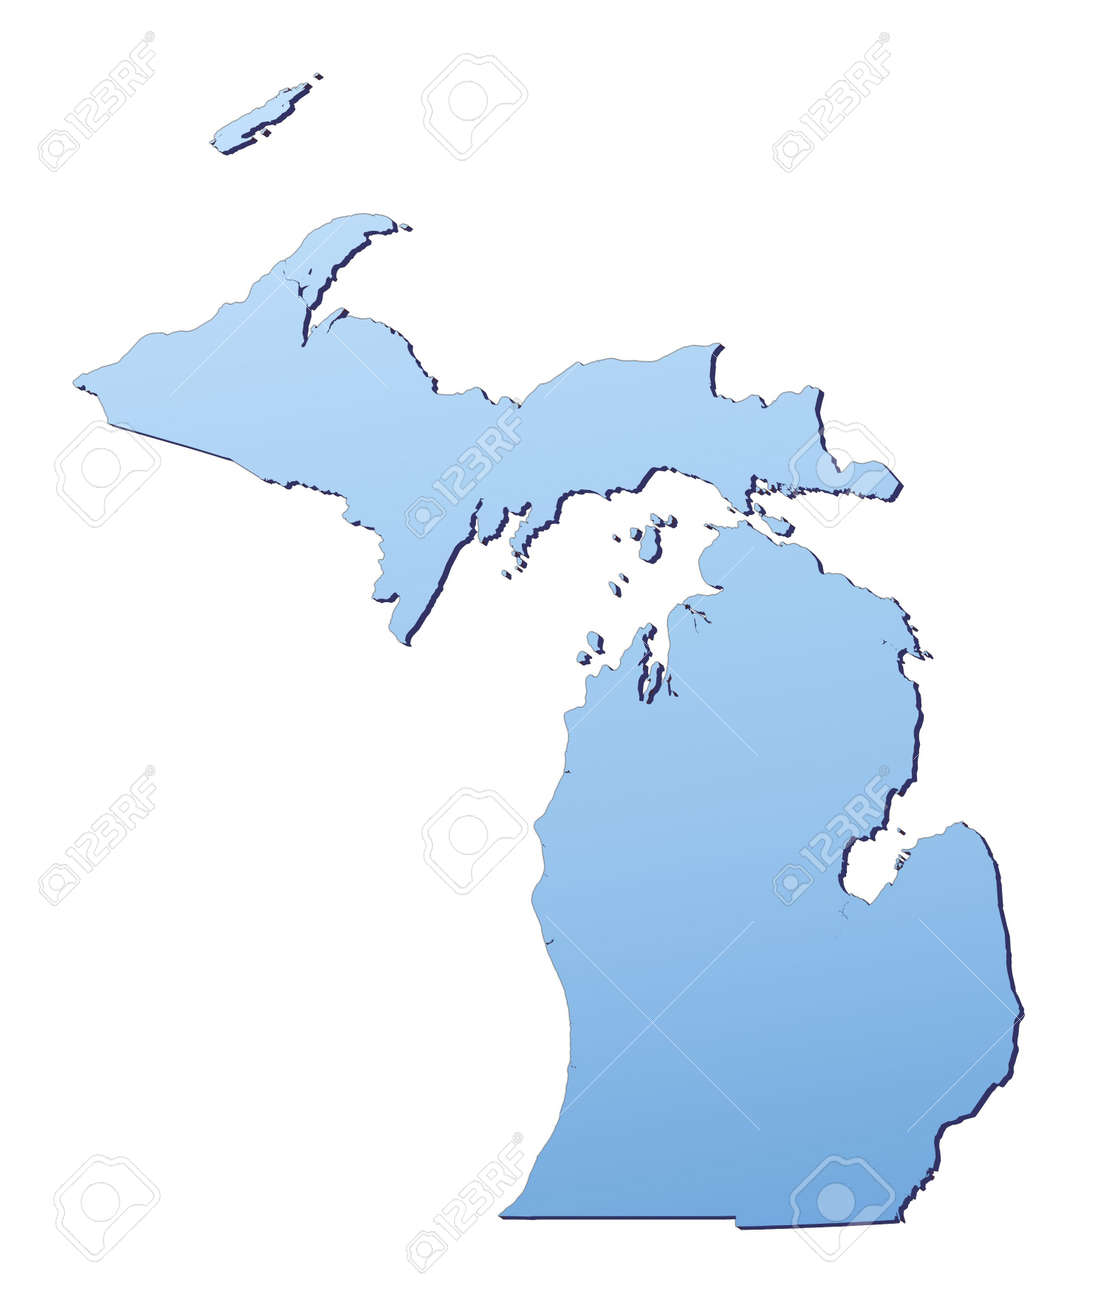 Michiganusa Map Filled With Light Blue Gradient High Resolution Map Of Usa Michigan